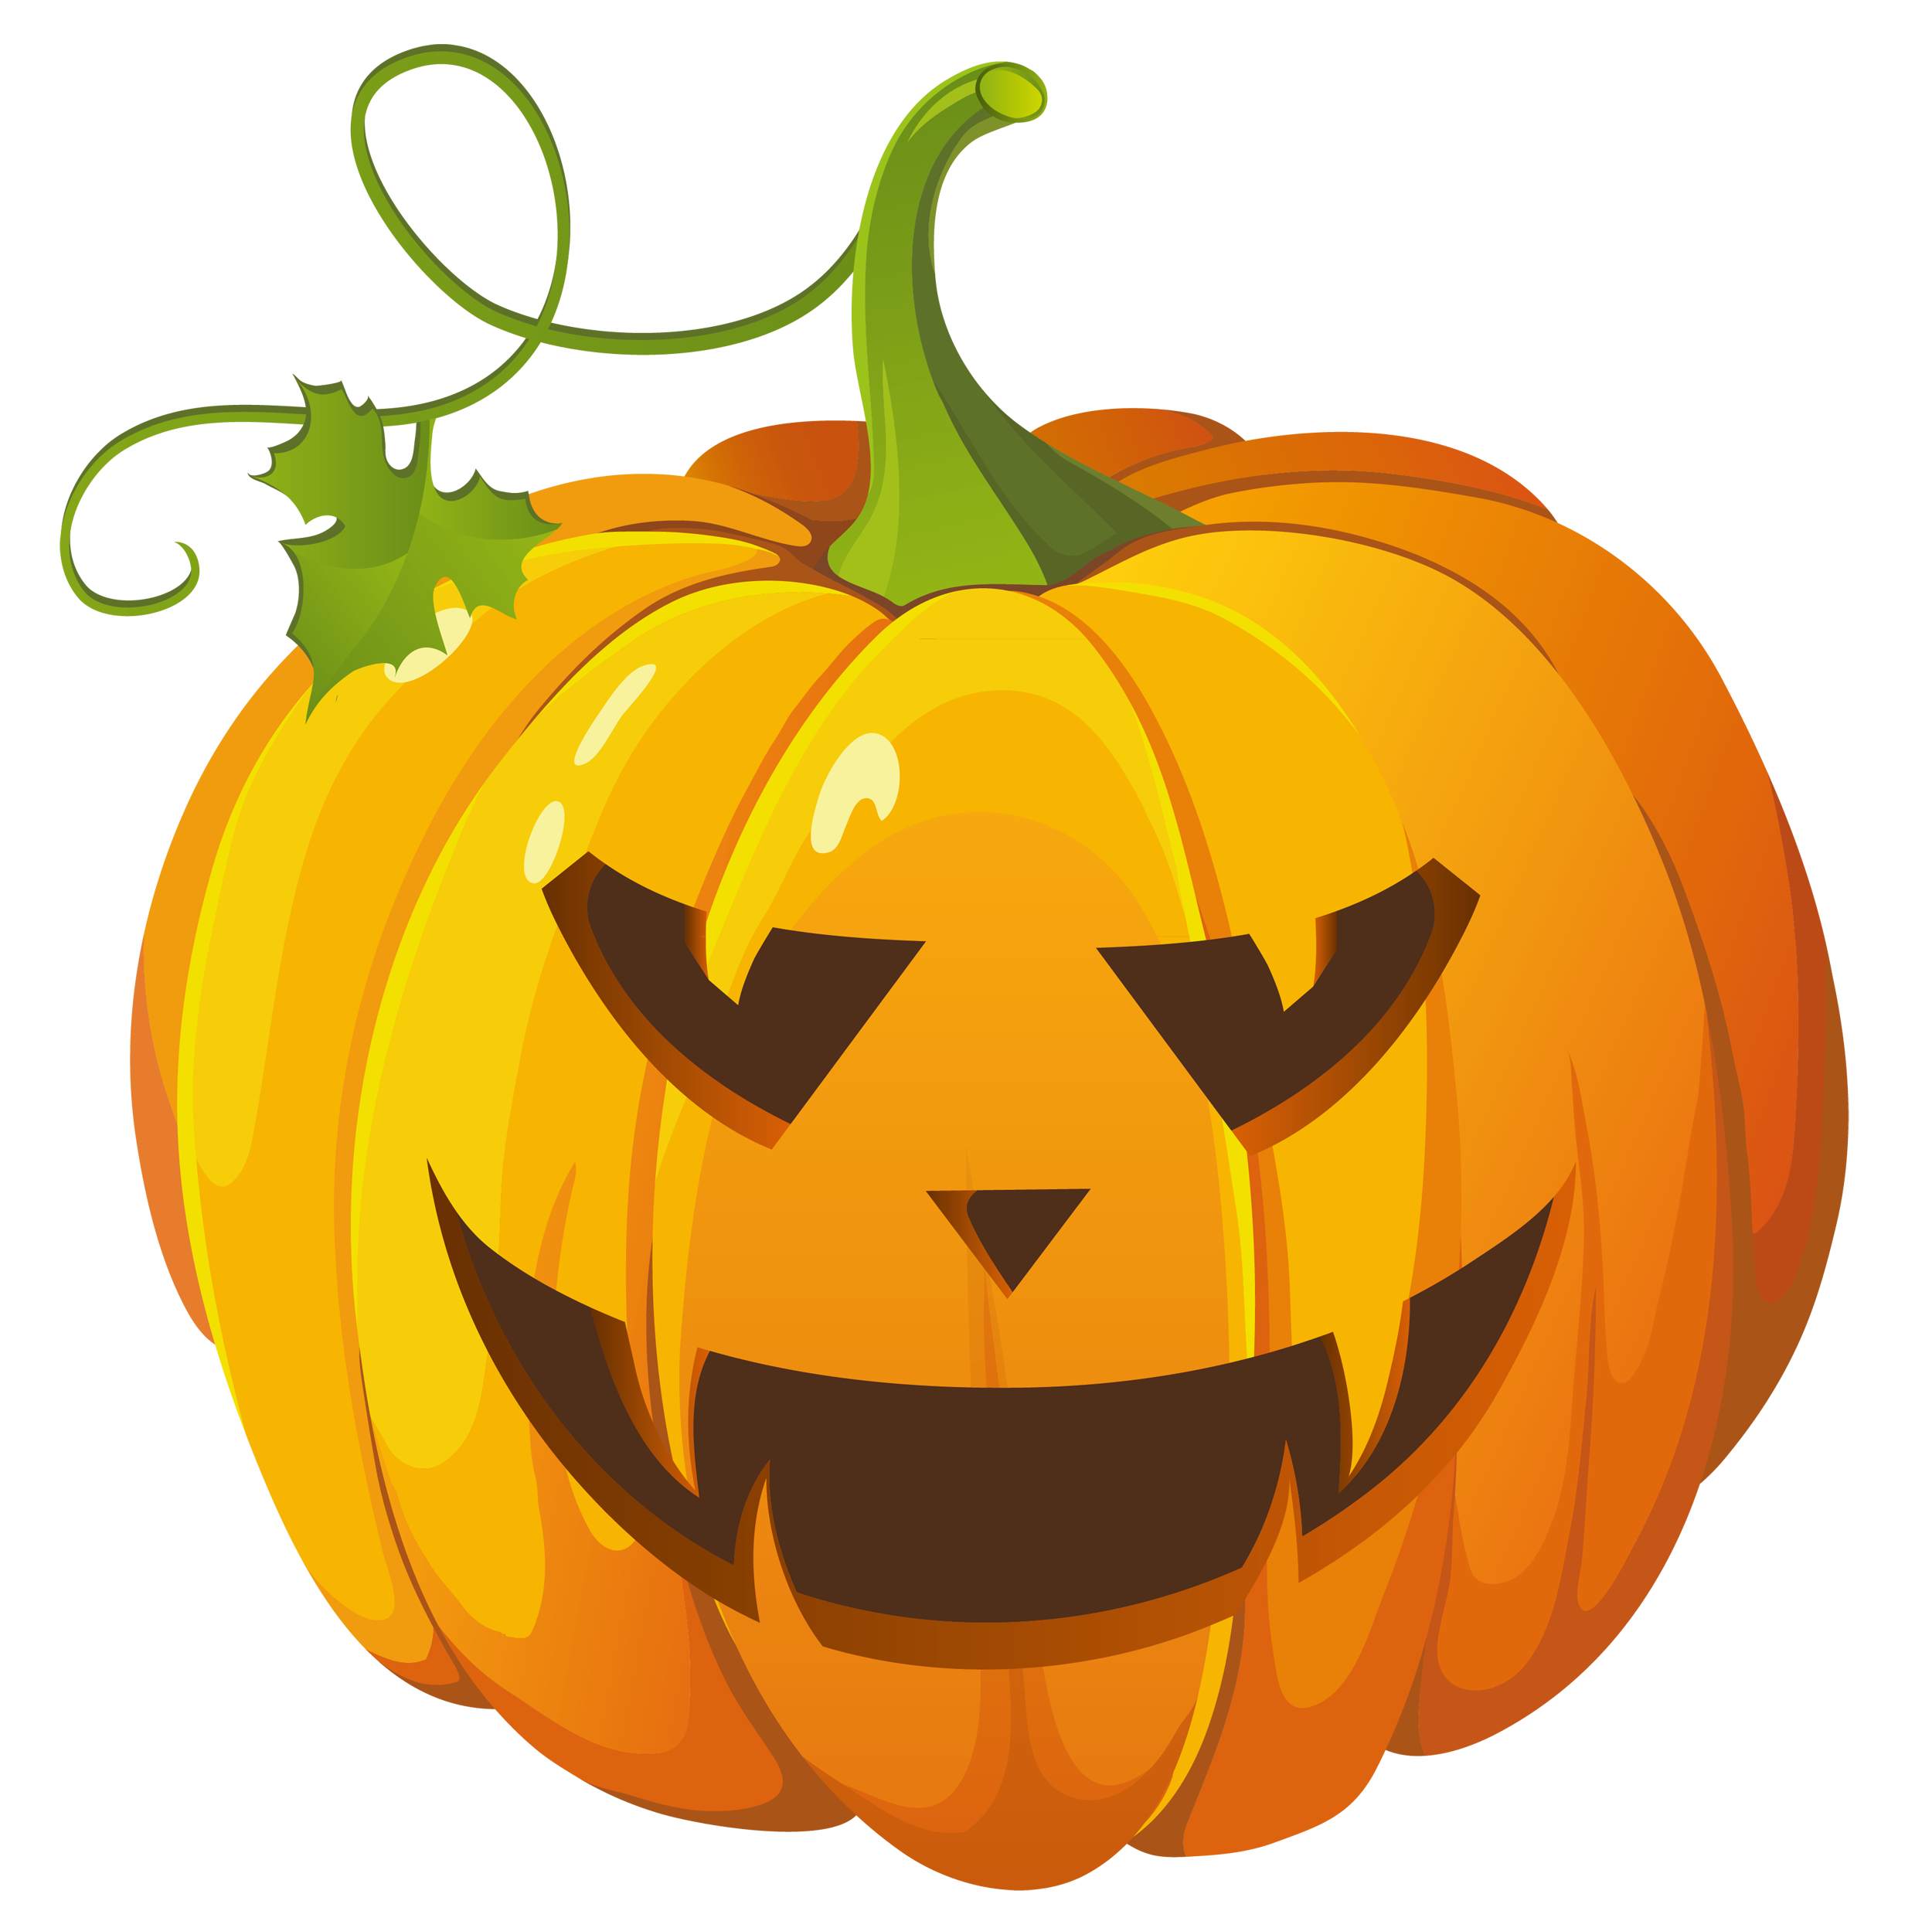 Pumpkin with cut for face clipart clip art free download Free Pumpkin Clipart at GetDrawings.com | Free for personal use Free ... clip art free download